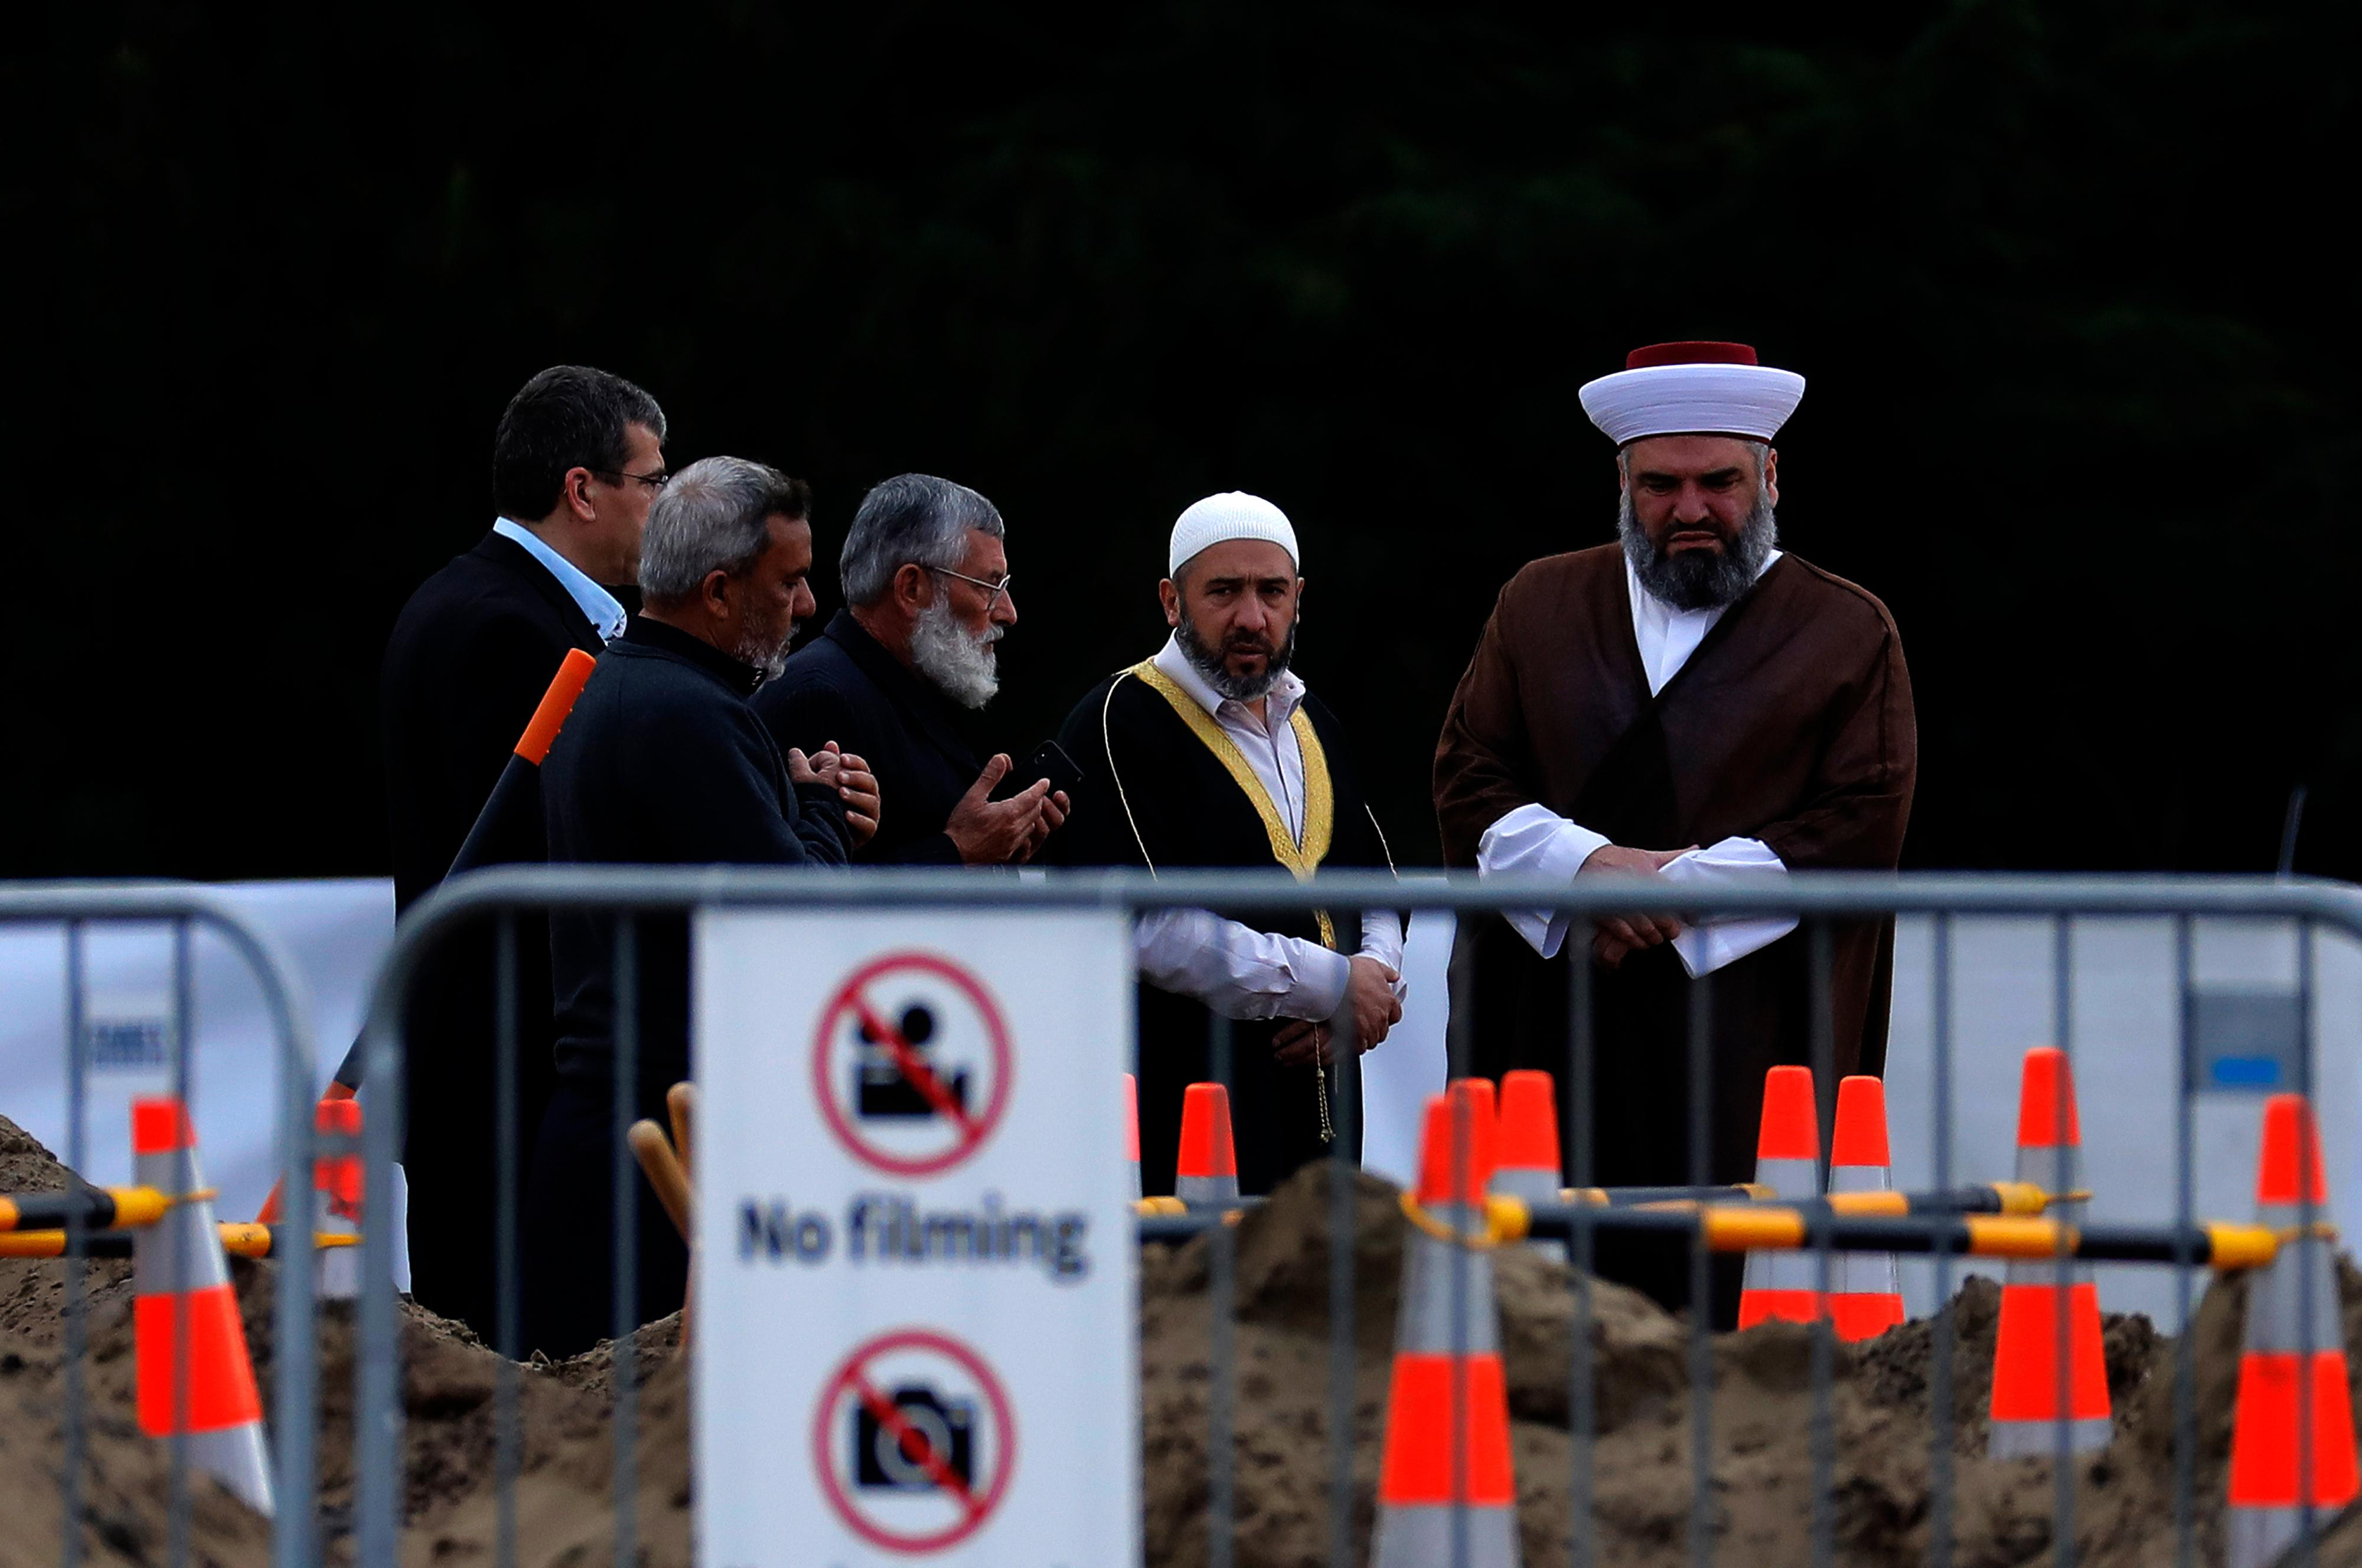 Mourners gather before a service of a victim from last week's mosque shooting for a burial at the Memorial Park Cemetery in Christchurch, New Zealand, Thursday, March 21, 2019. (AP Photo/Vincent Yu)